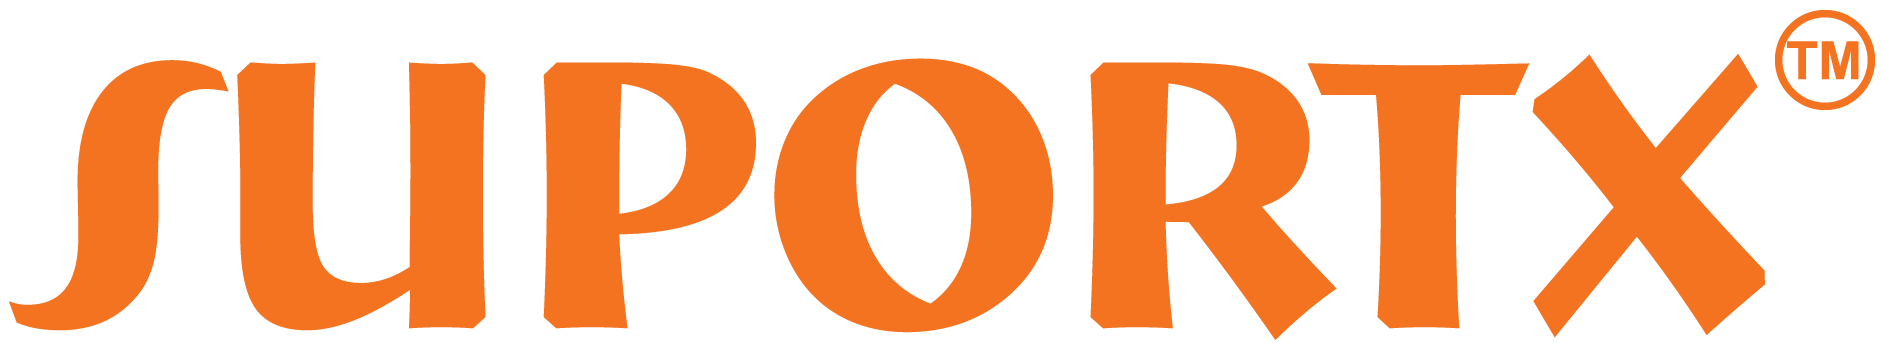 SUPORTX